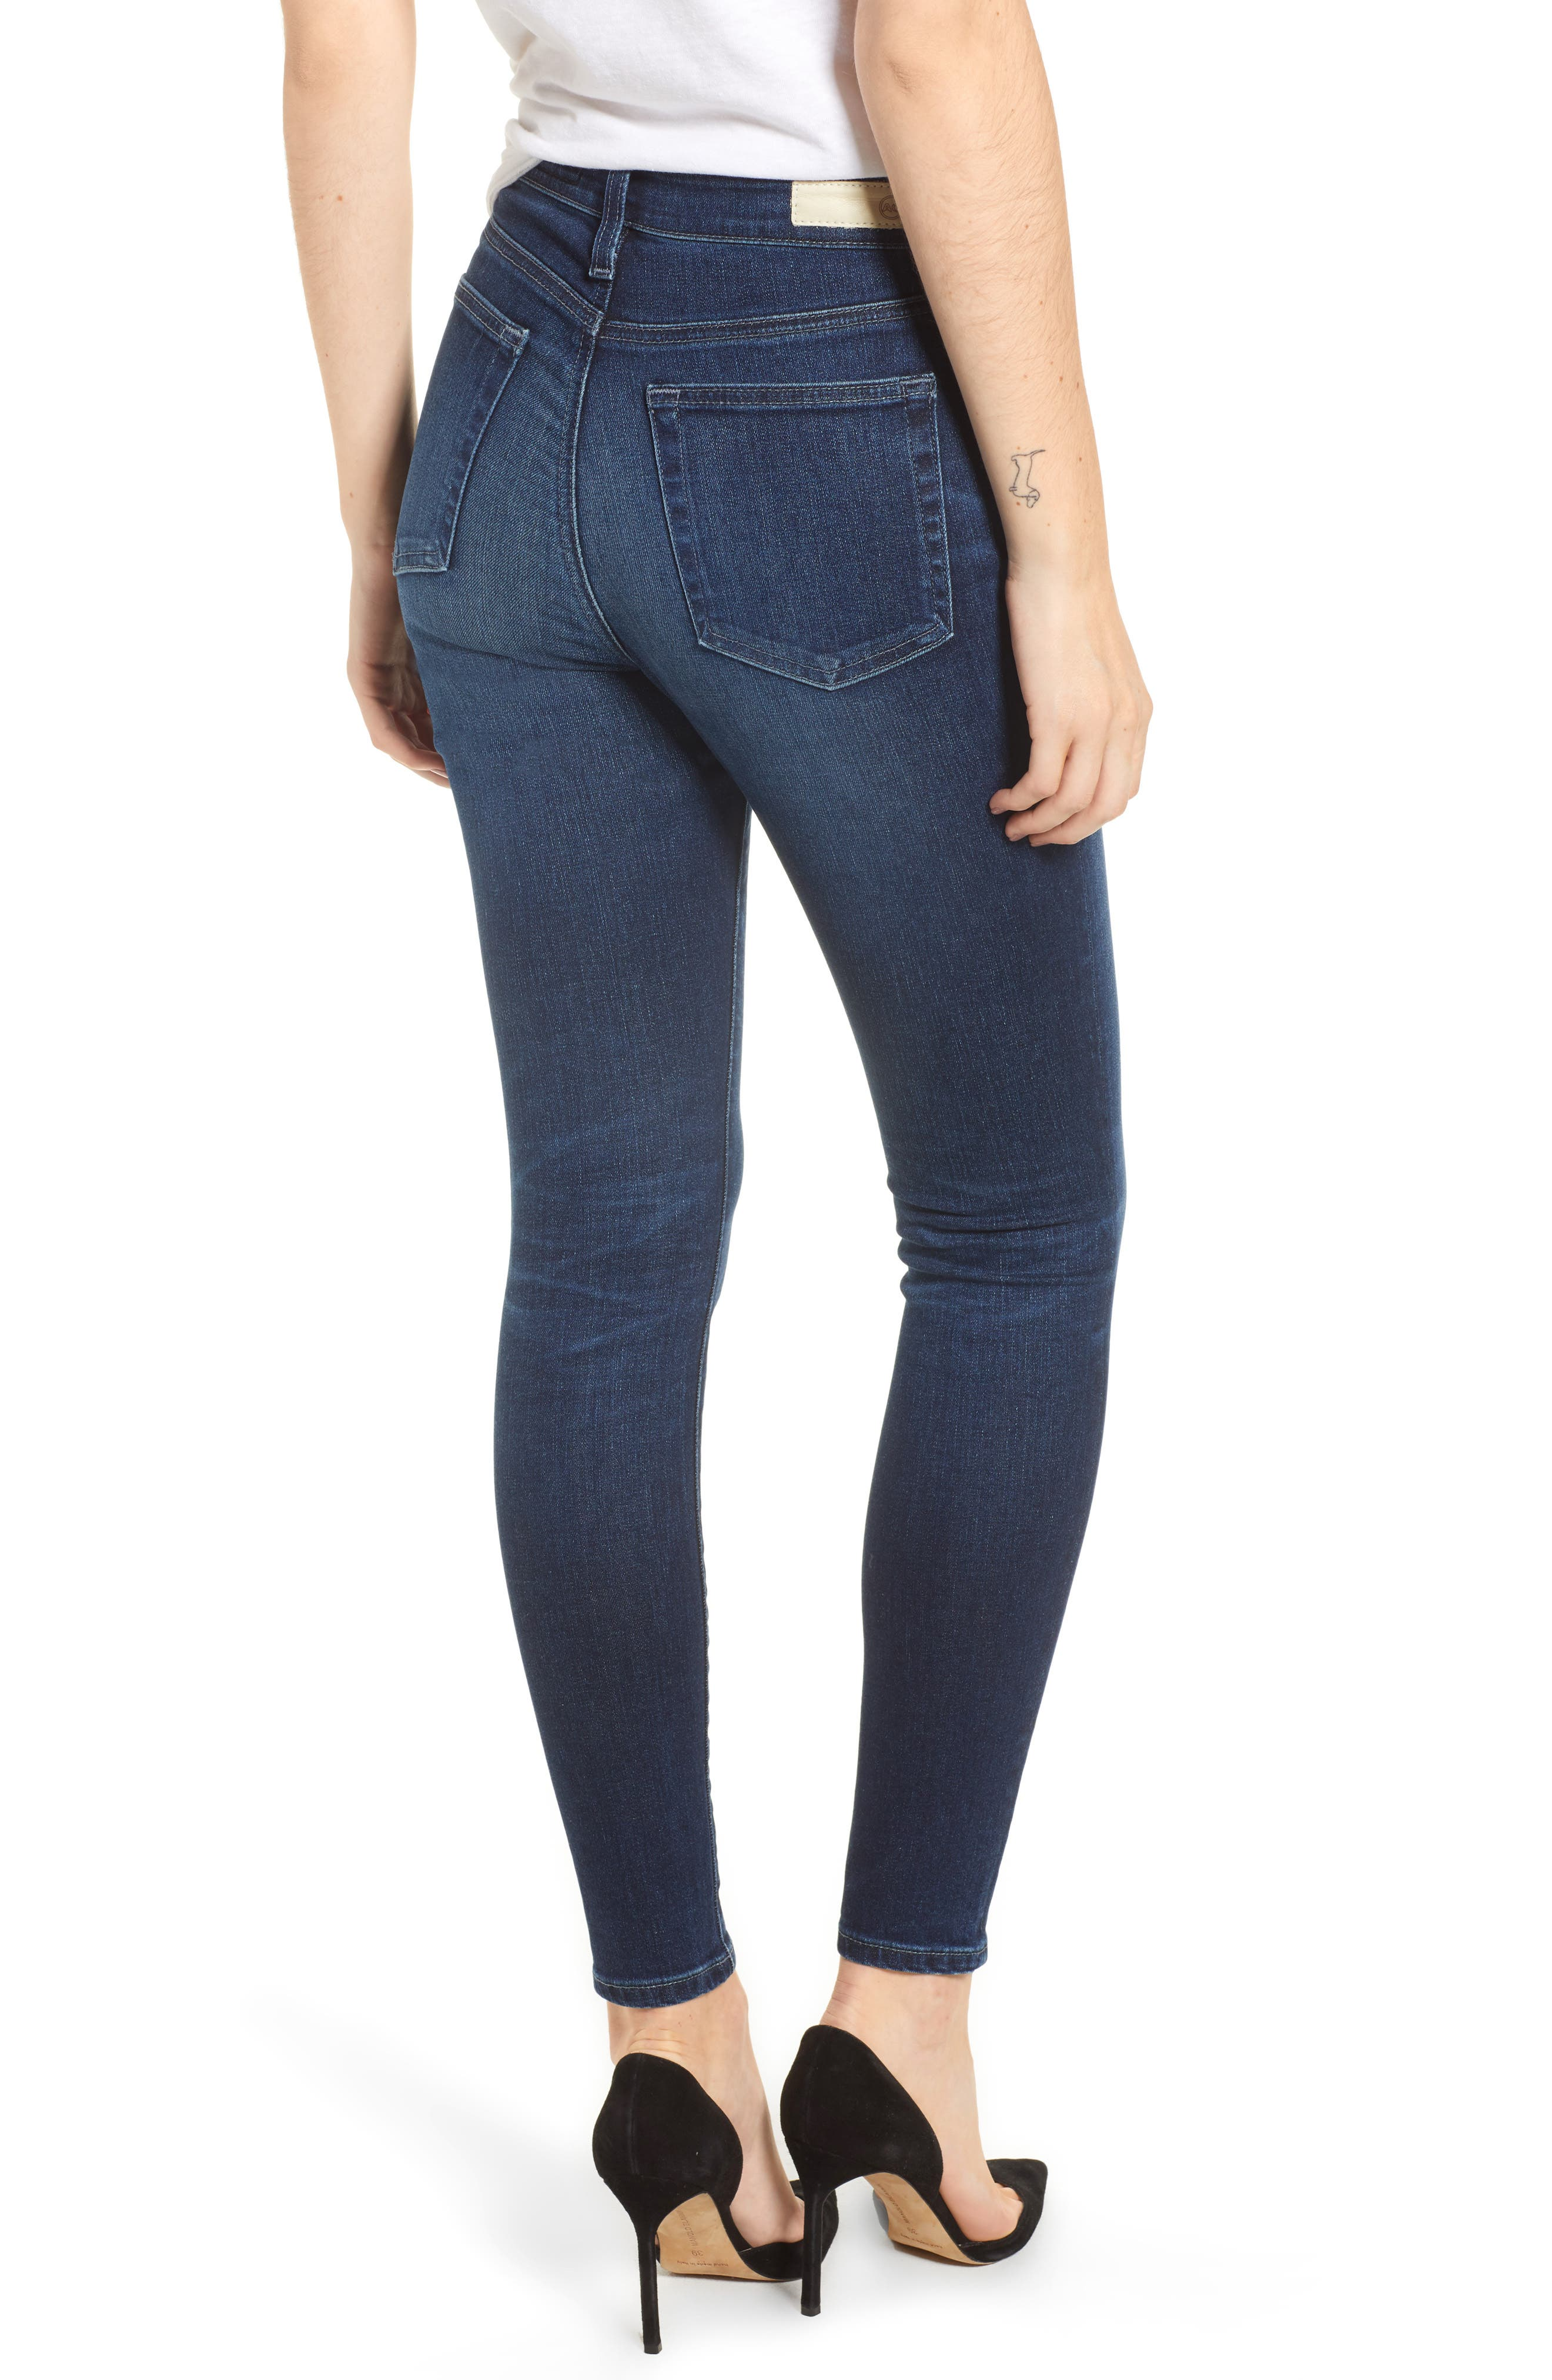 Mila Ankle Skinny Jeans,                             Alternate thumbnail 2, color,                             4 Years Deep Willows